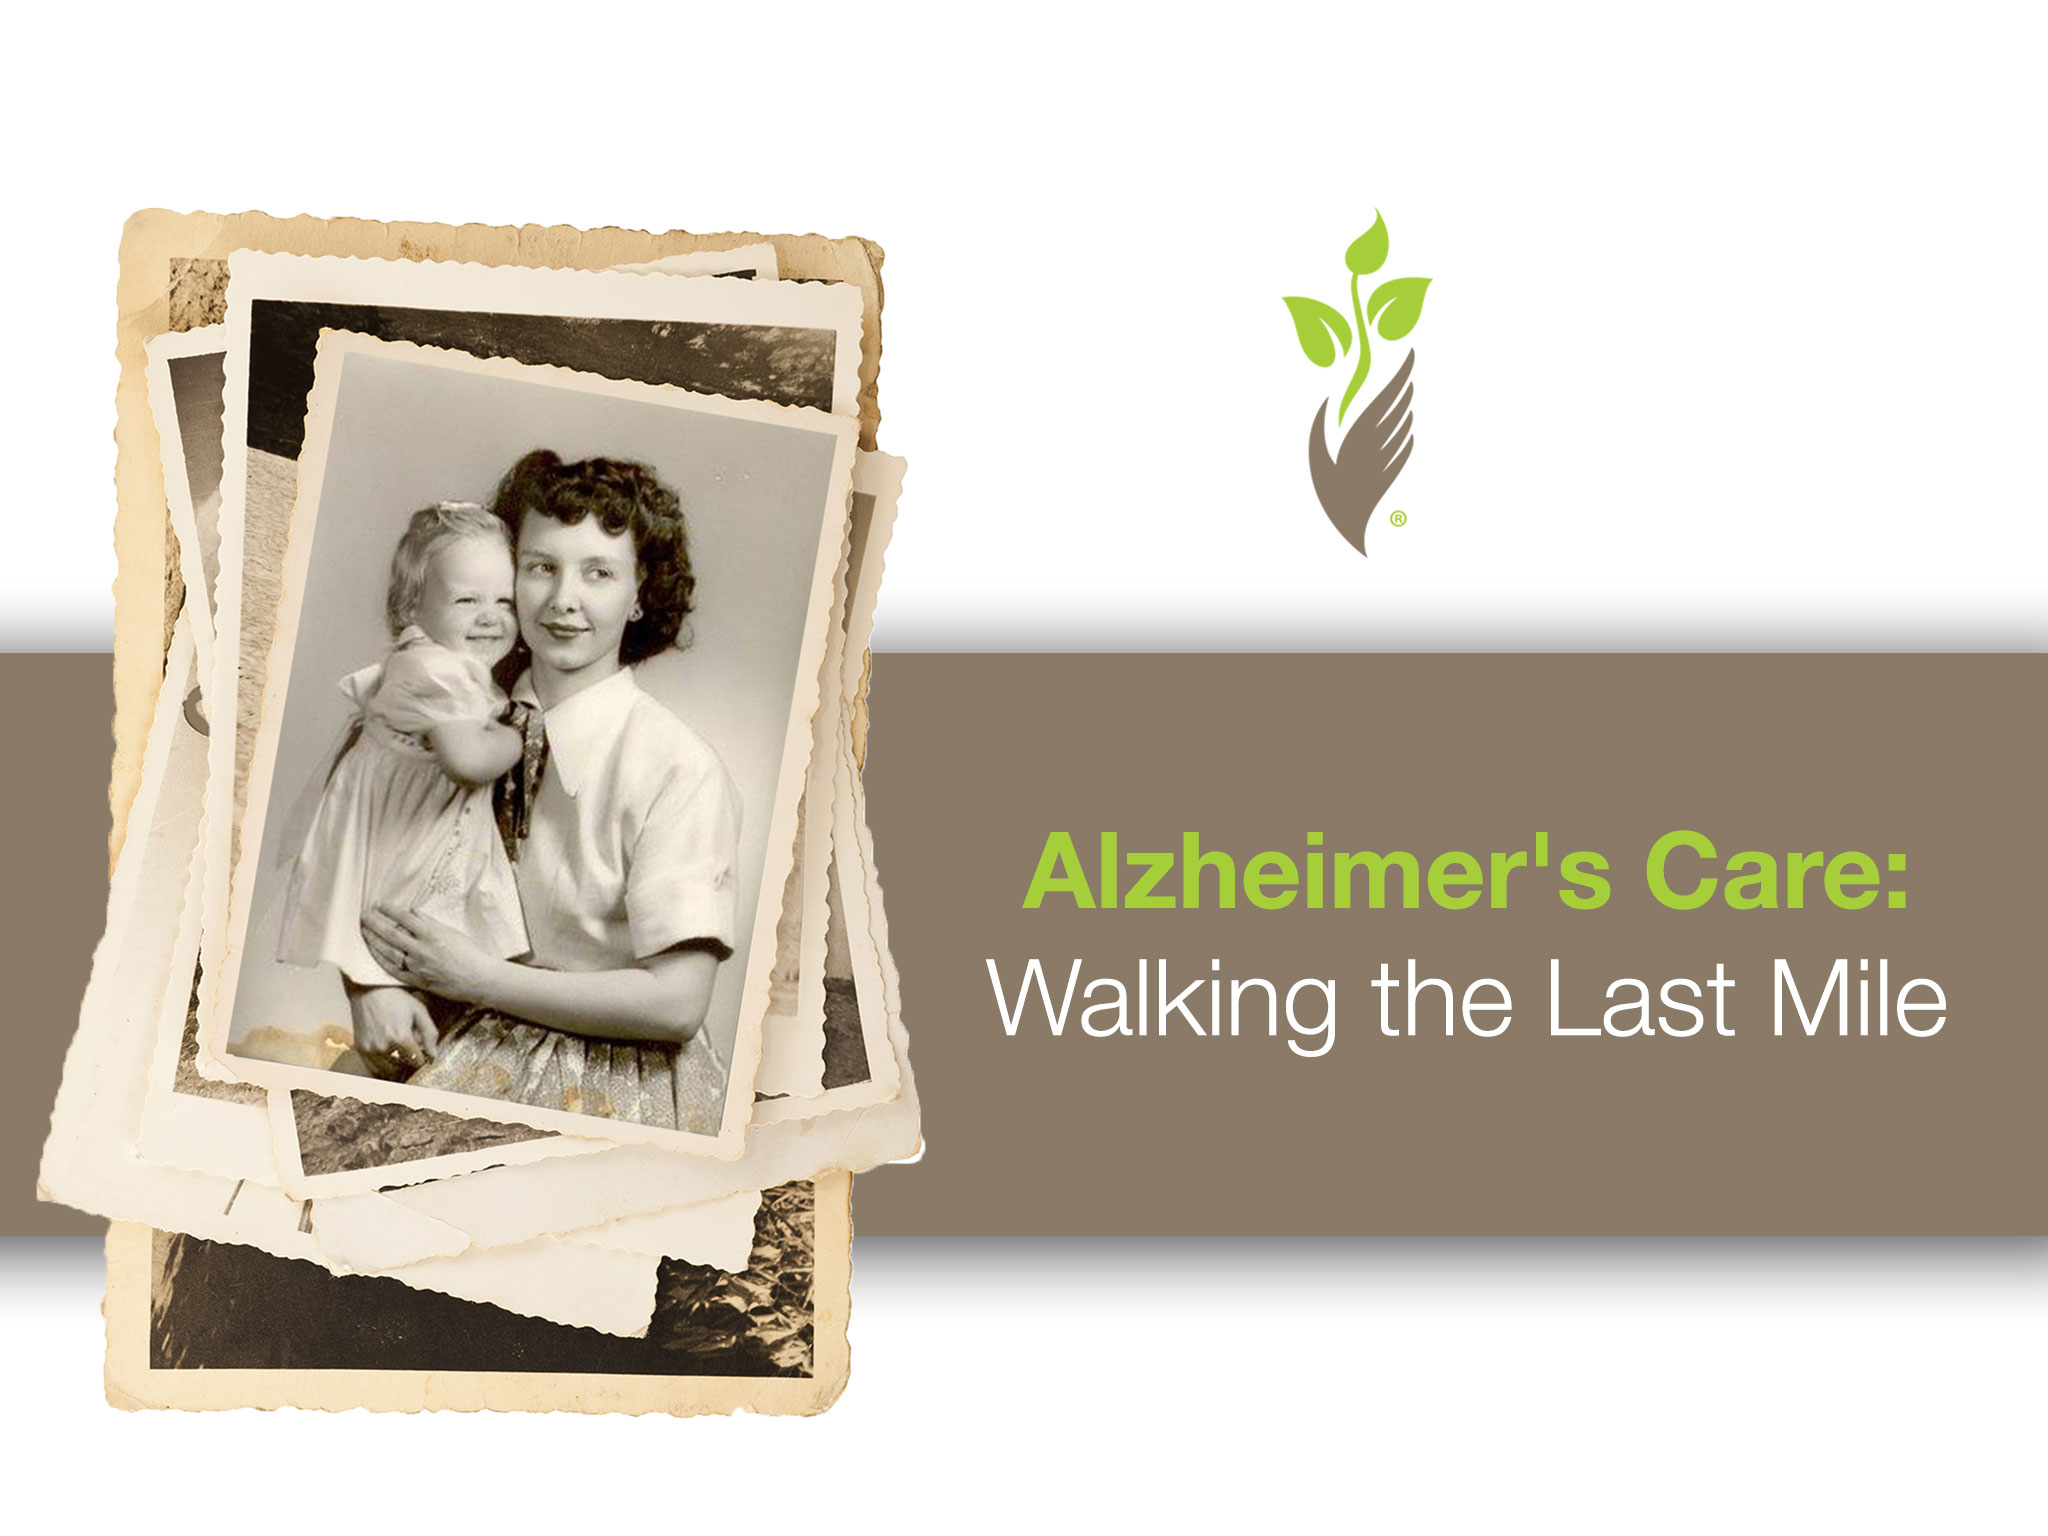 Alzheimer's Care: Walking the Last Mile